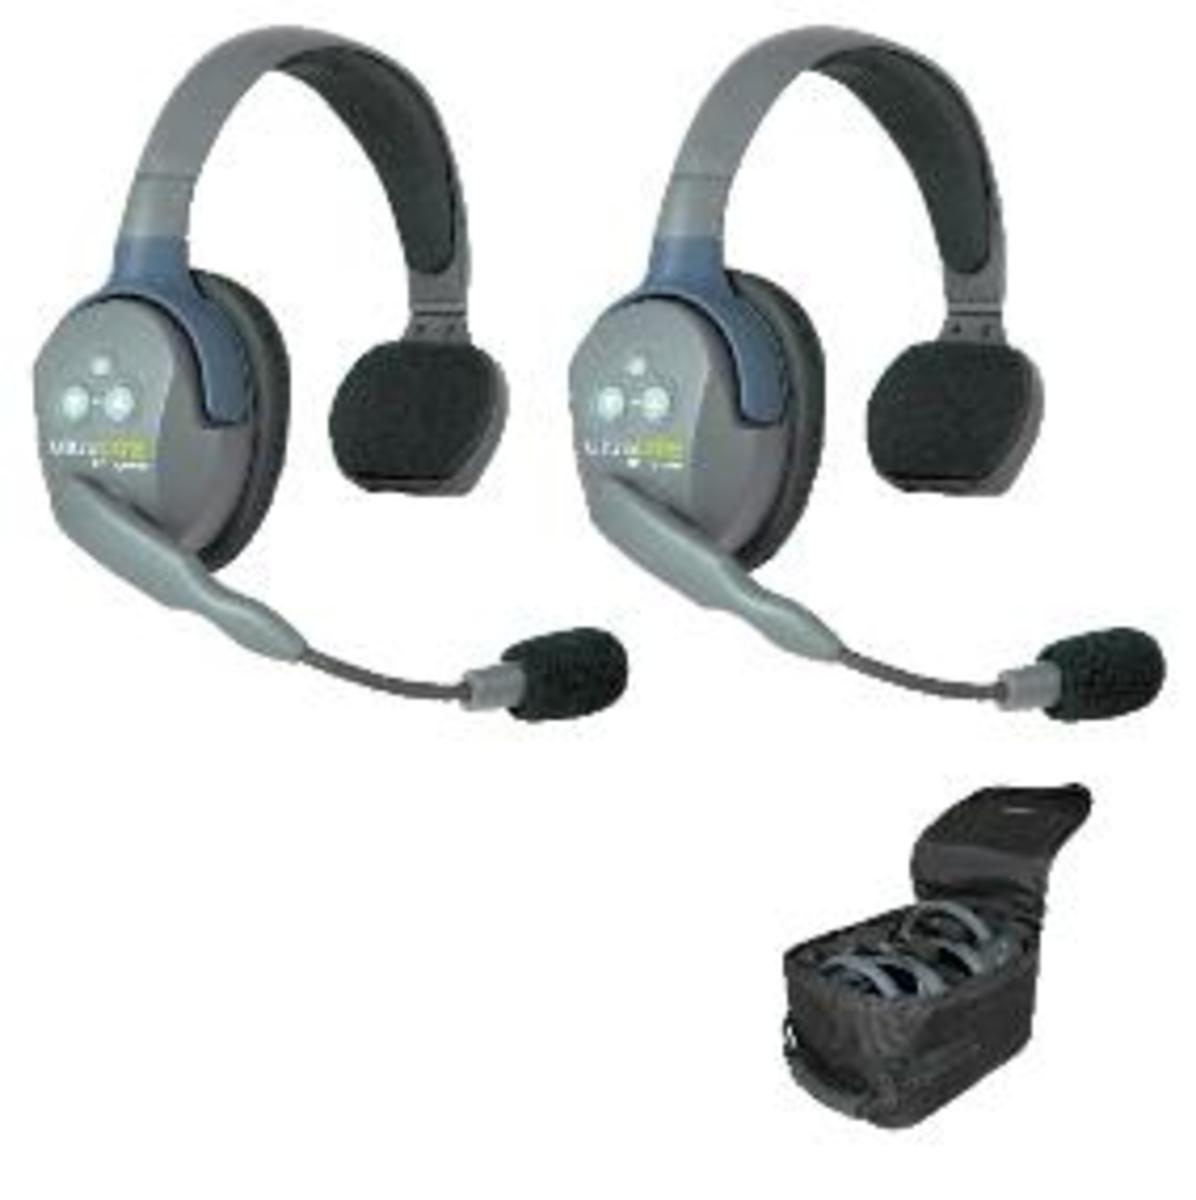 EarTec Ultralight System, $385 from Defender